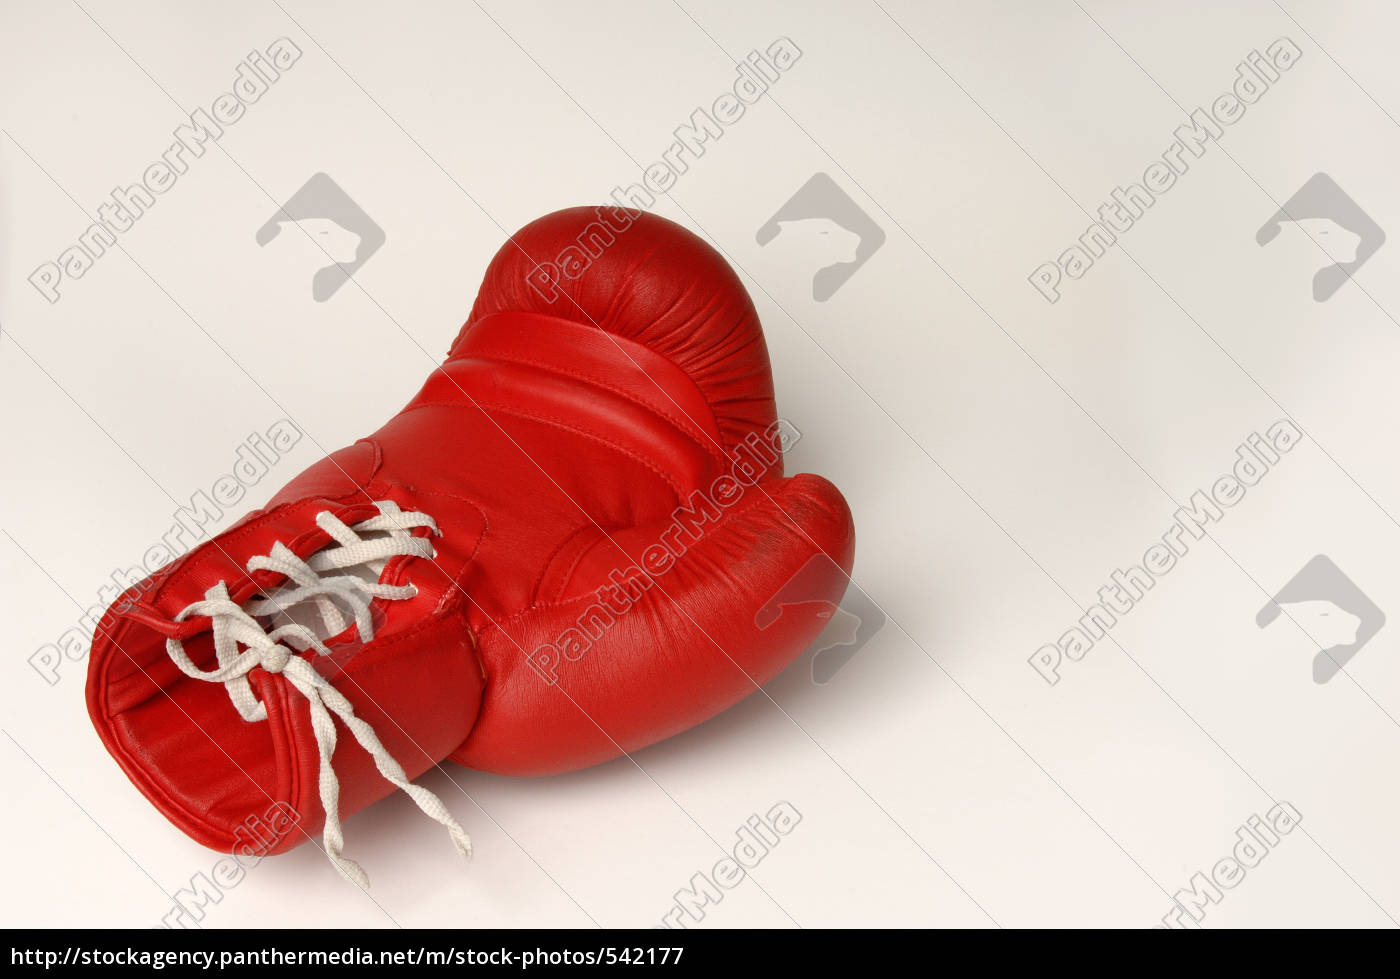 red, boxing, gloves - 542177